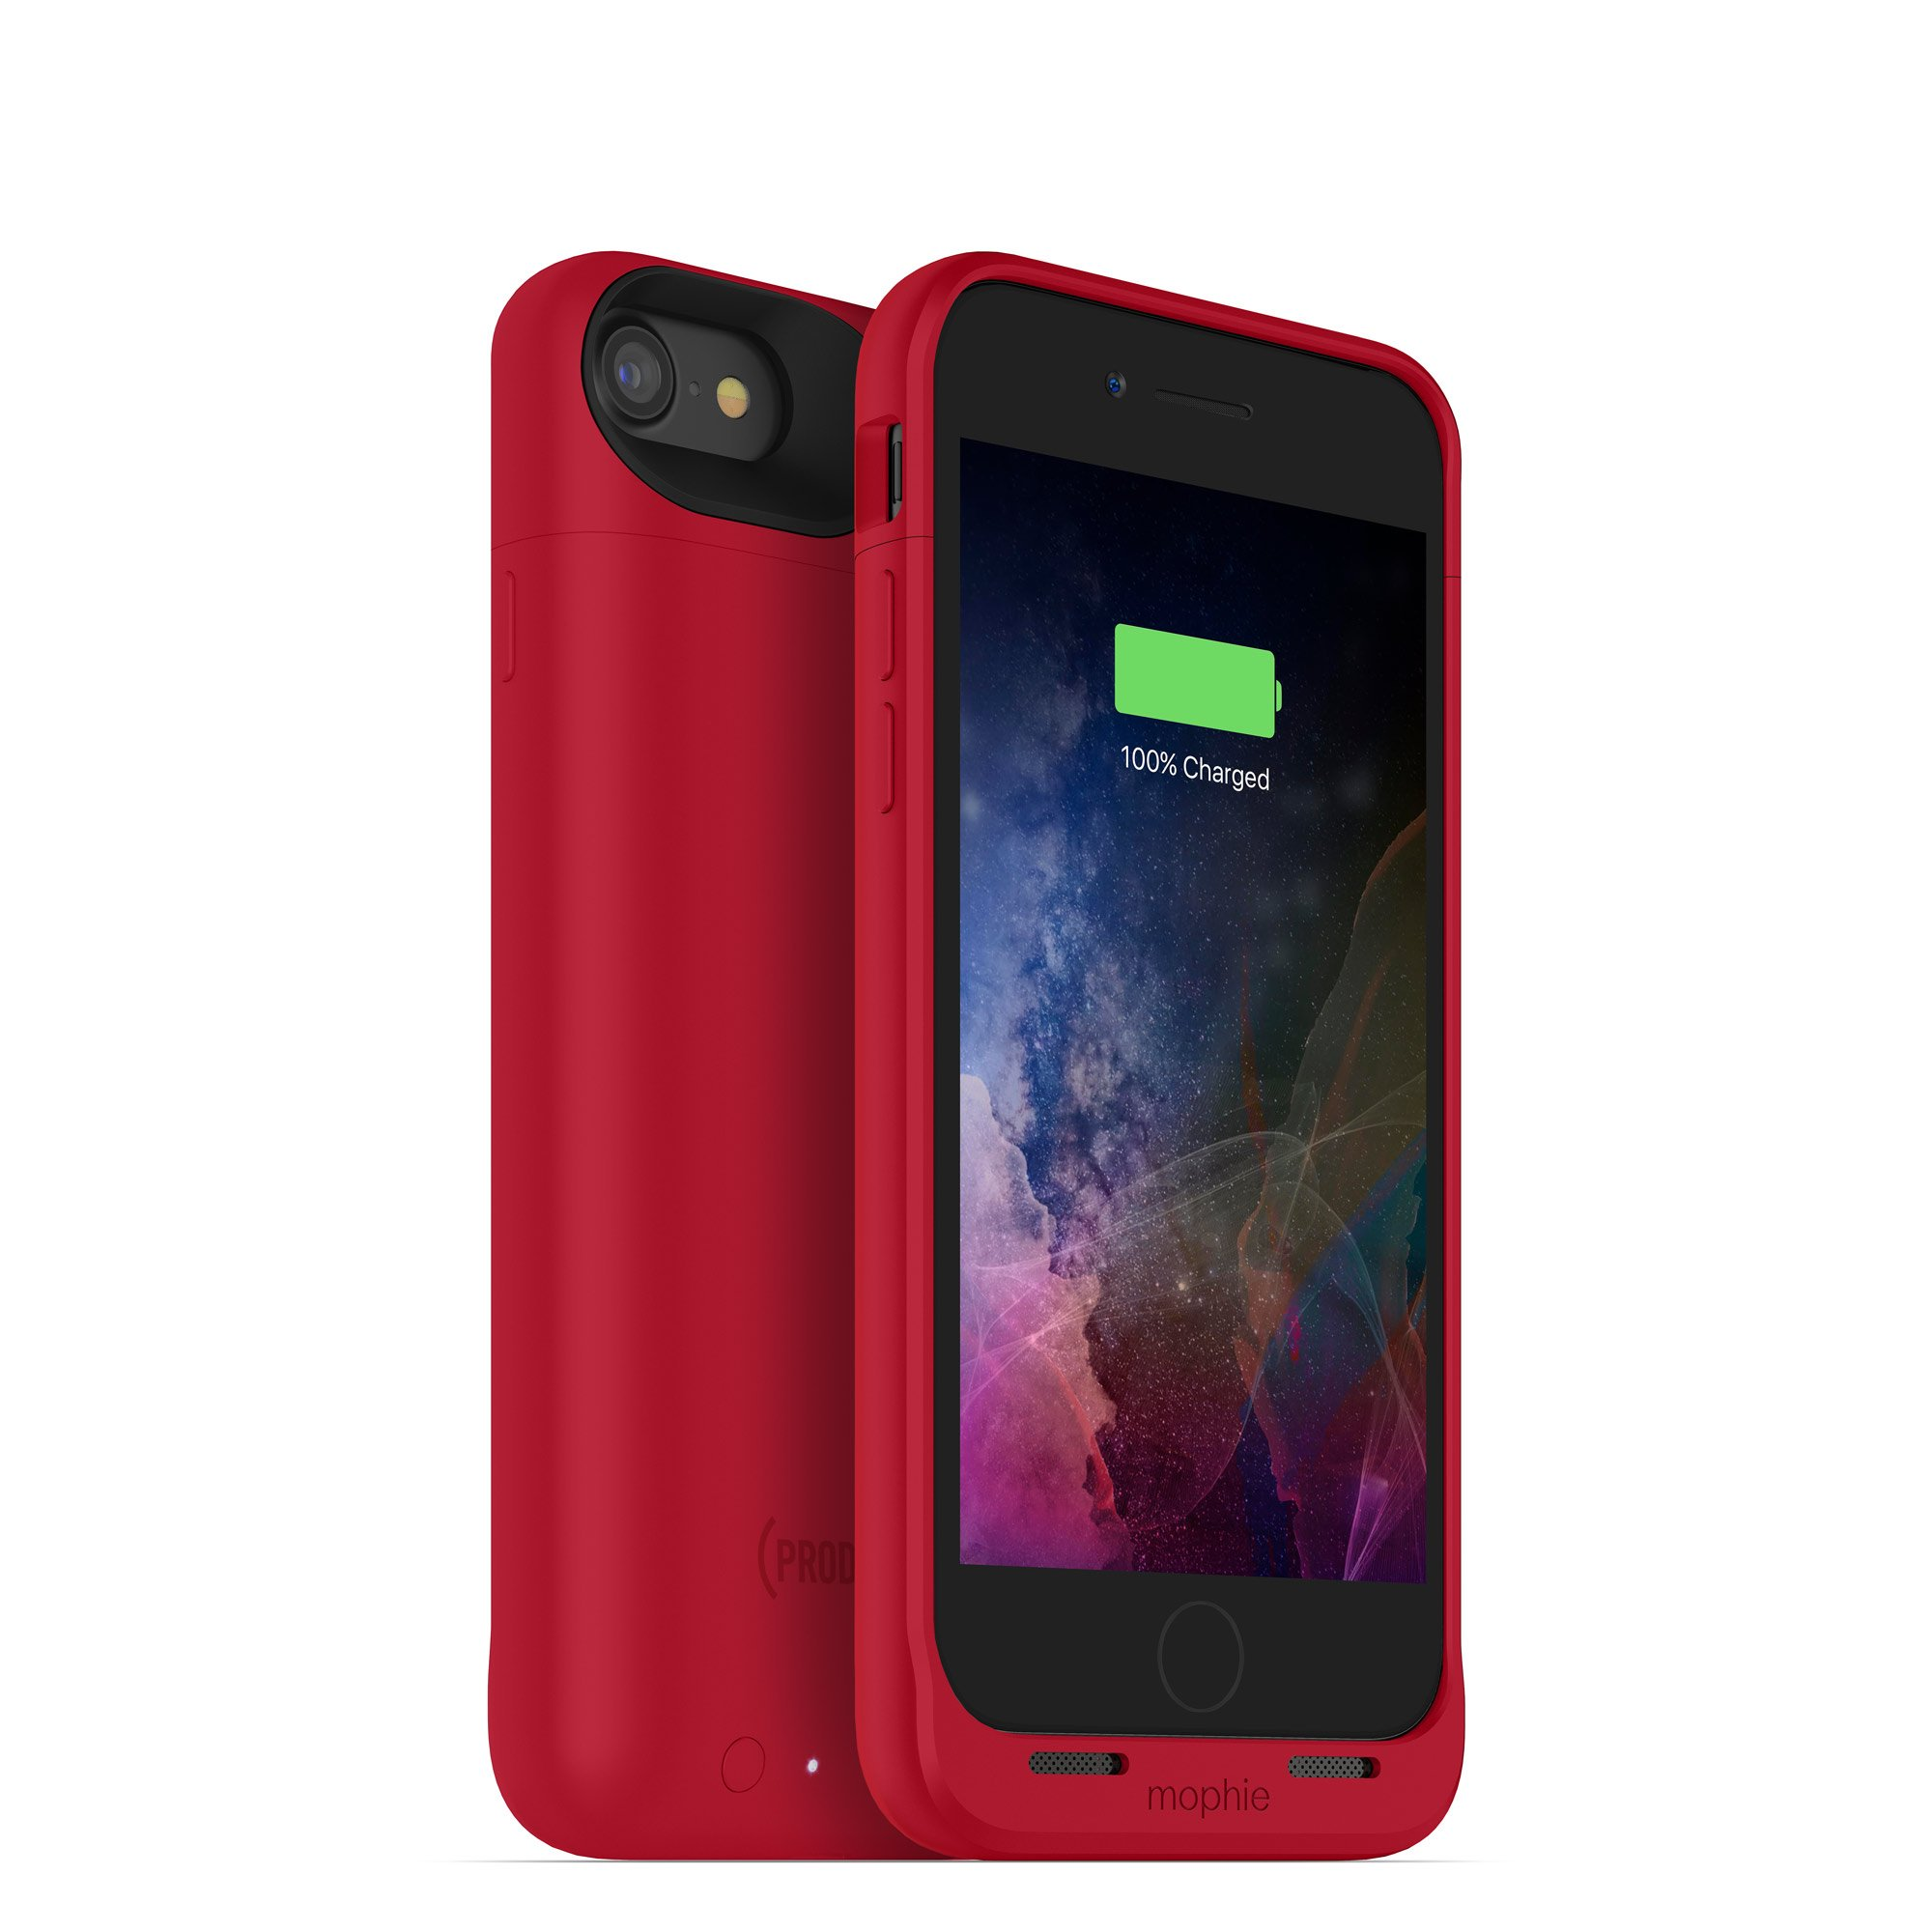 mophie juice pack wireless  - Charge Force Wireless Power - Wireless Charging Protective Battery Pack Case for Apple iPhone 8 and iPhone 7 - (PRODUCT)RED